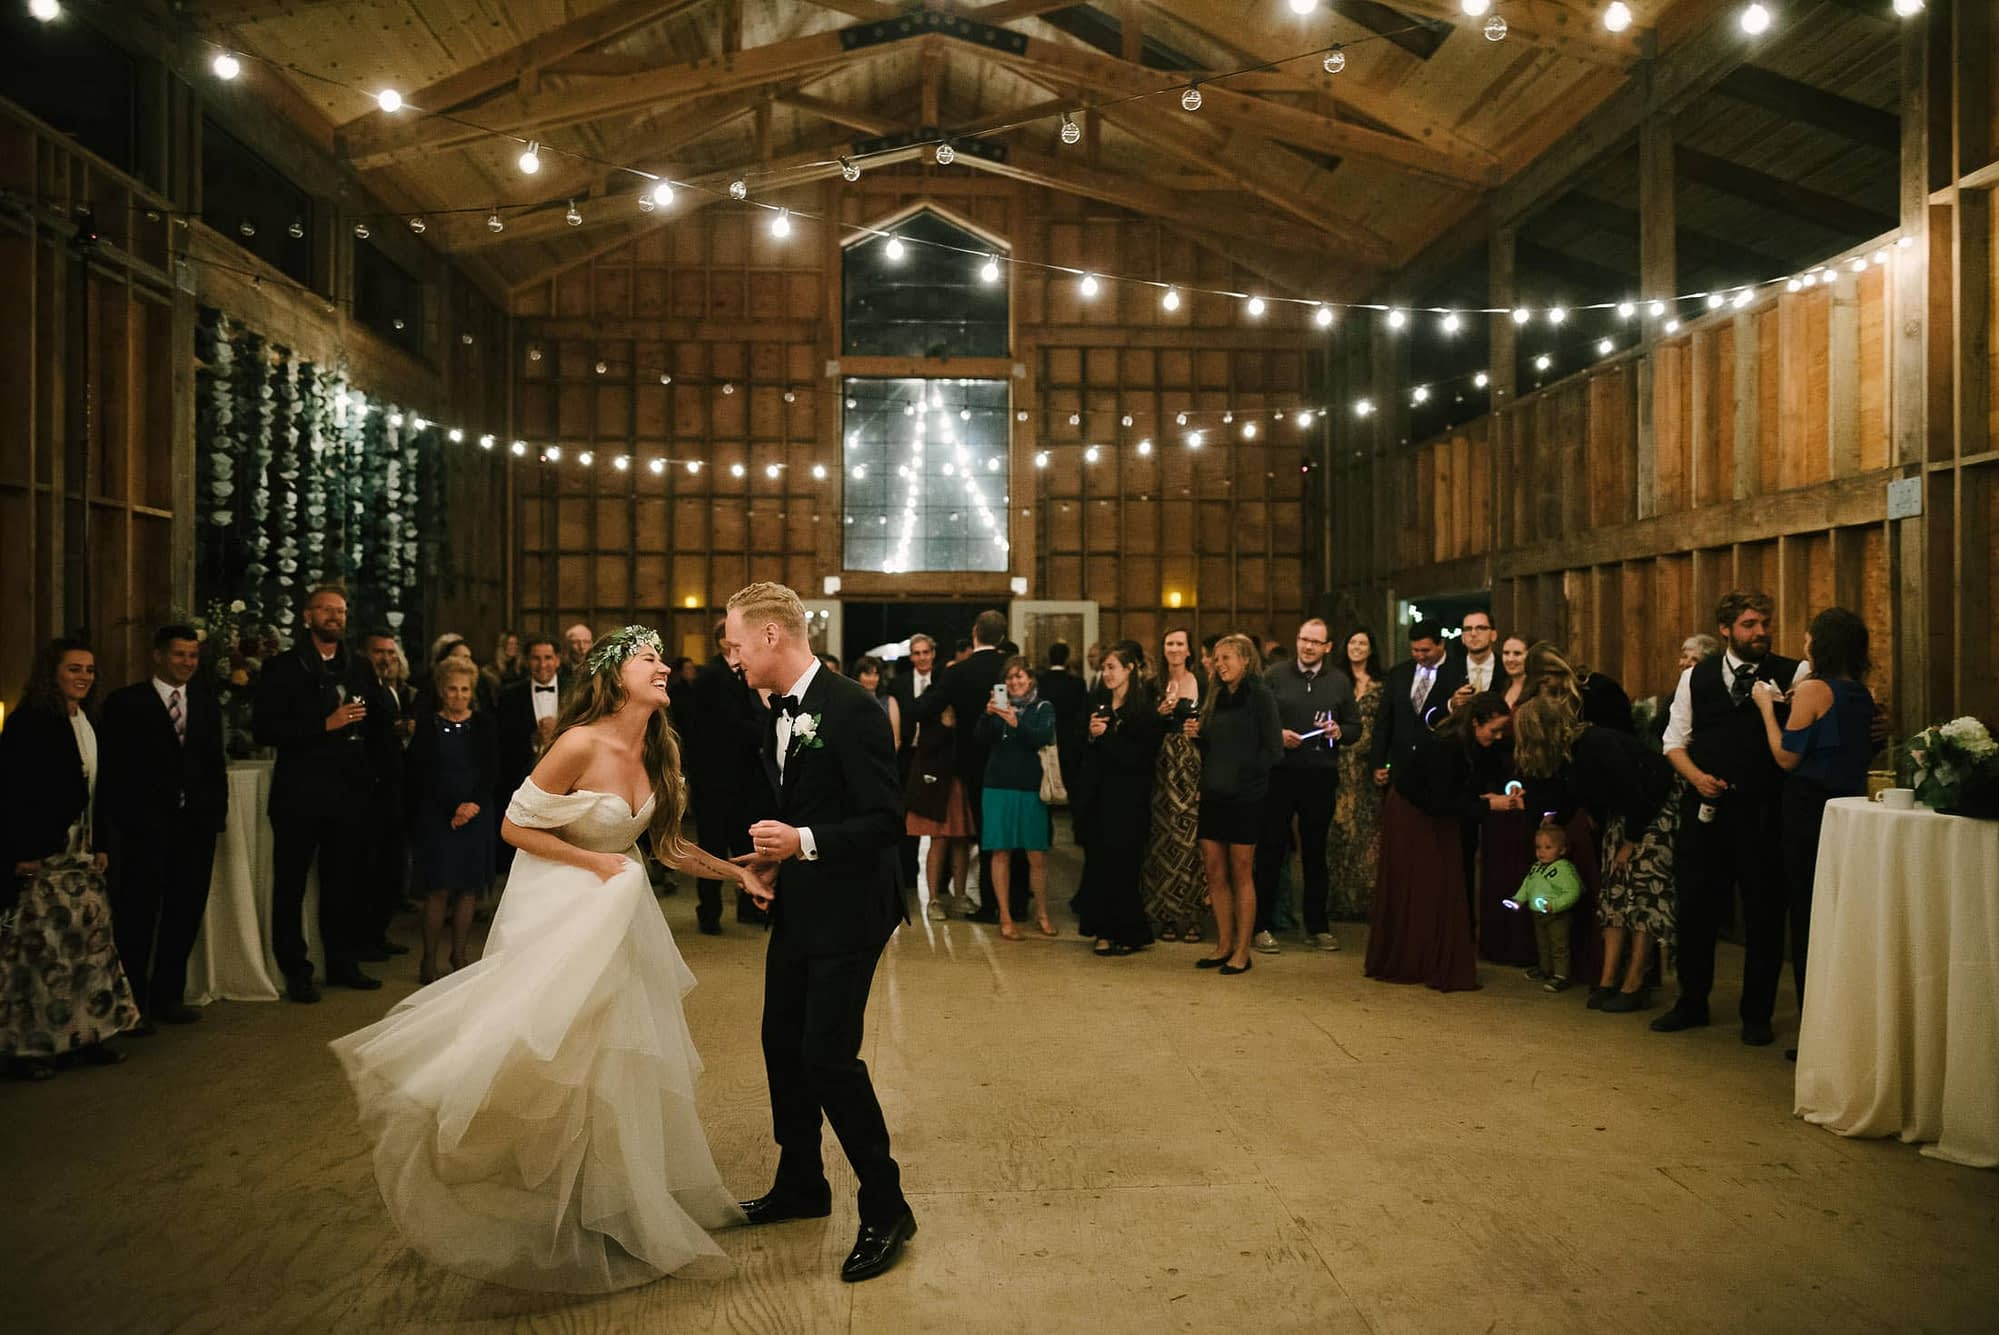 Oz Farm Wedding Dancing